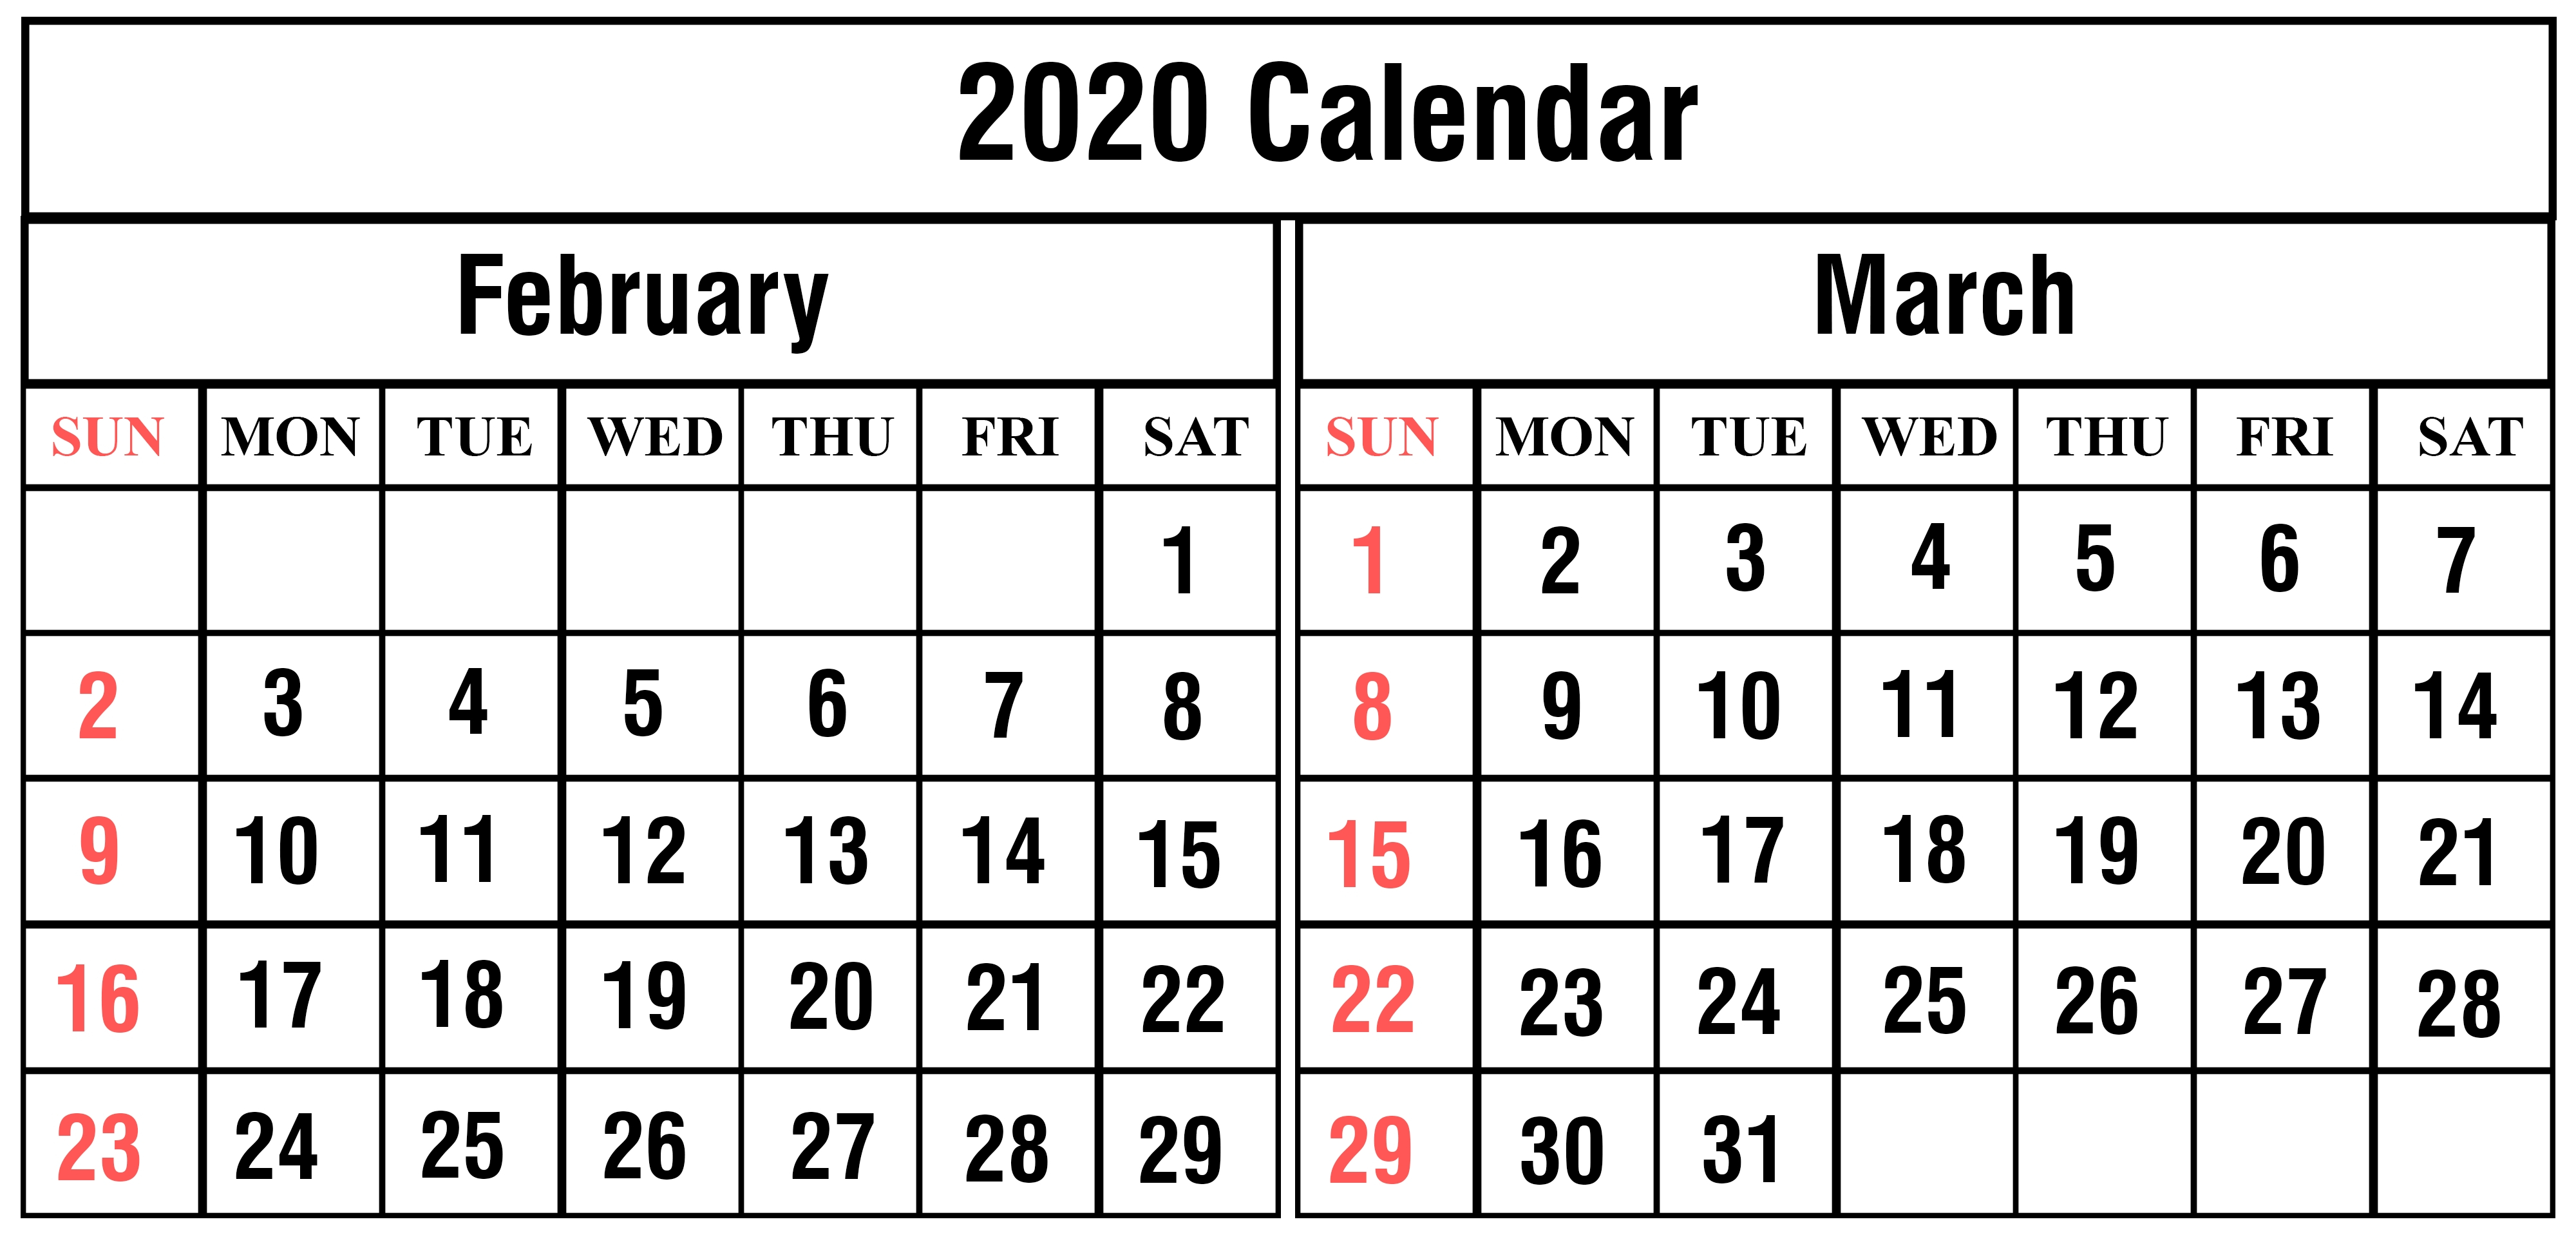 Calendar Of February And March 2020 | Calendar Template intended for Feb And March 2020